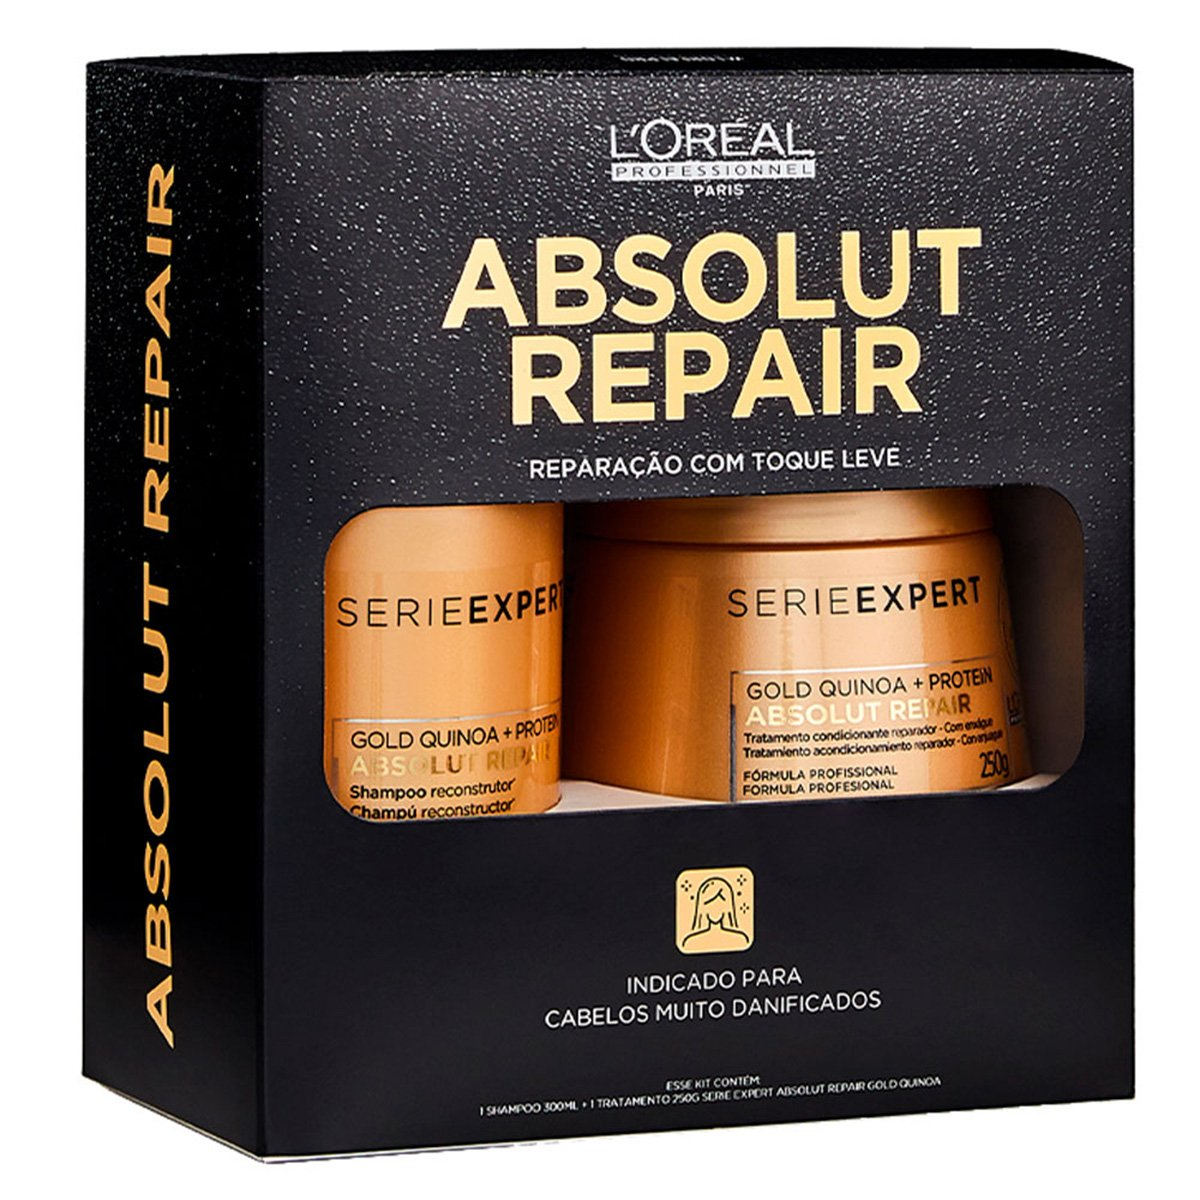 Kit L'Oréal Professionnel Absolut Repair Condicionador + Máscara de Tratamento